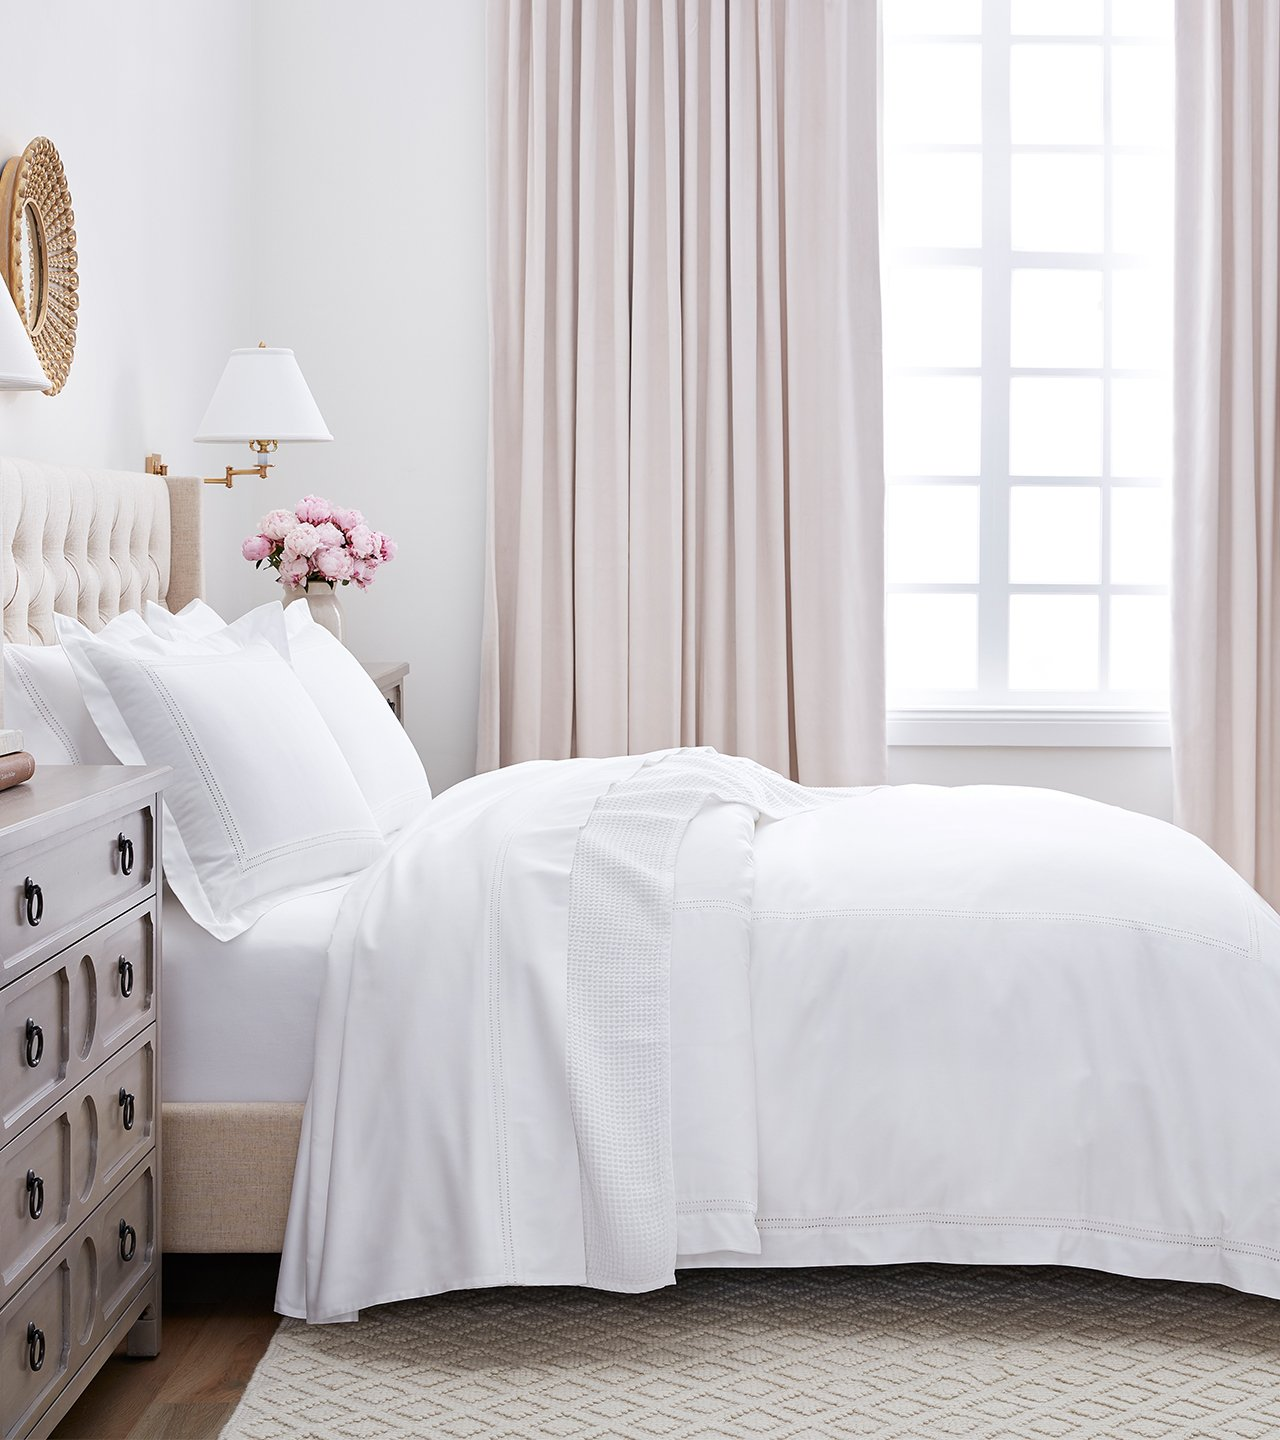 Profile Shot of bed made with Eyelet Duvet & Sheet Set in White